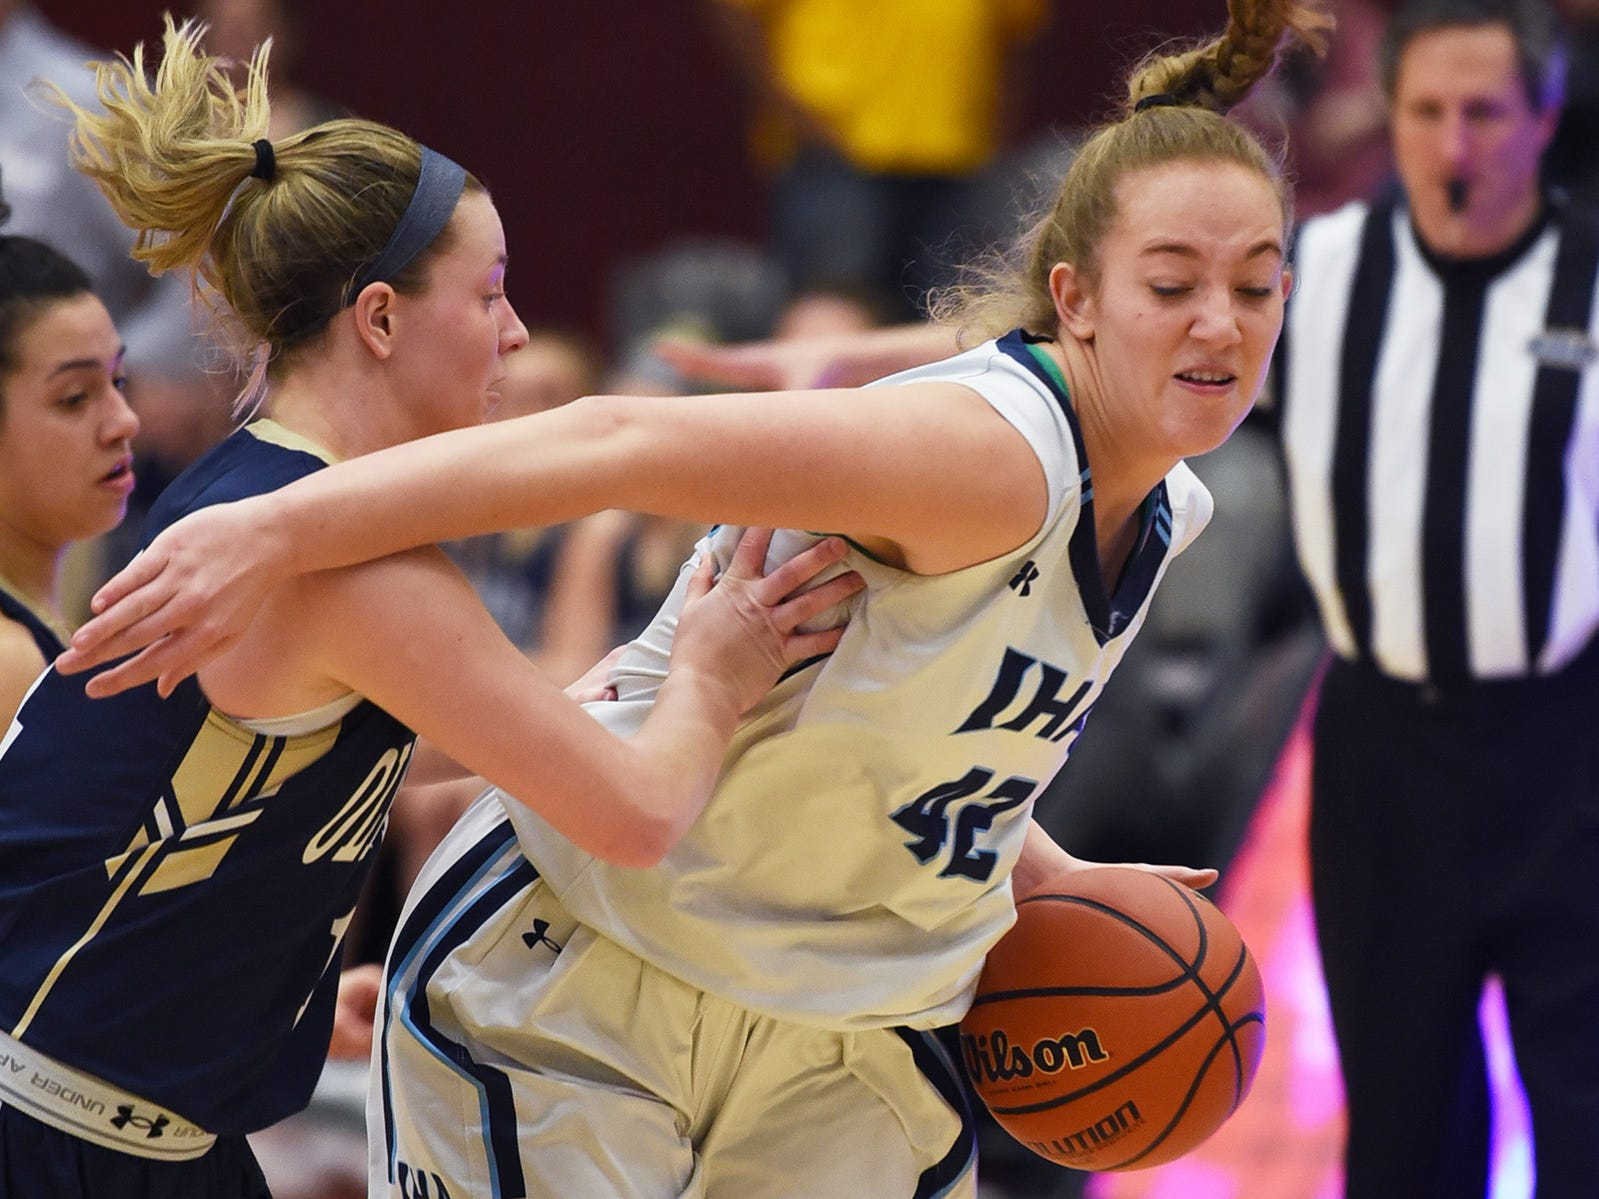 Anna Morris (no. 42) of Immaculate Heart tries to dribble around against NV/Old Tappan in the first half during the 2019 Bergen County girls basketball championship semifinal at Ramapo College in Mahwah on 02/10/19.